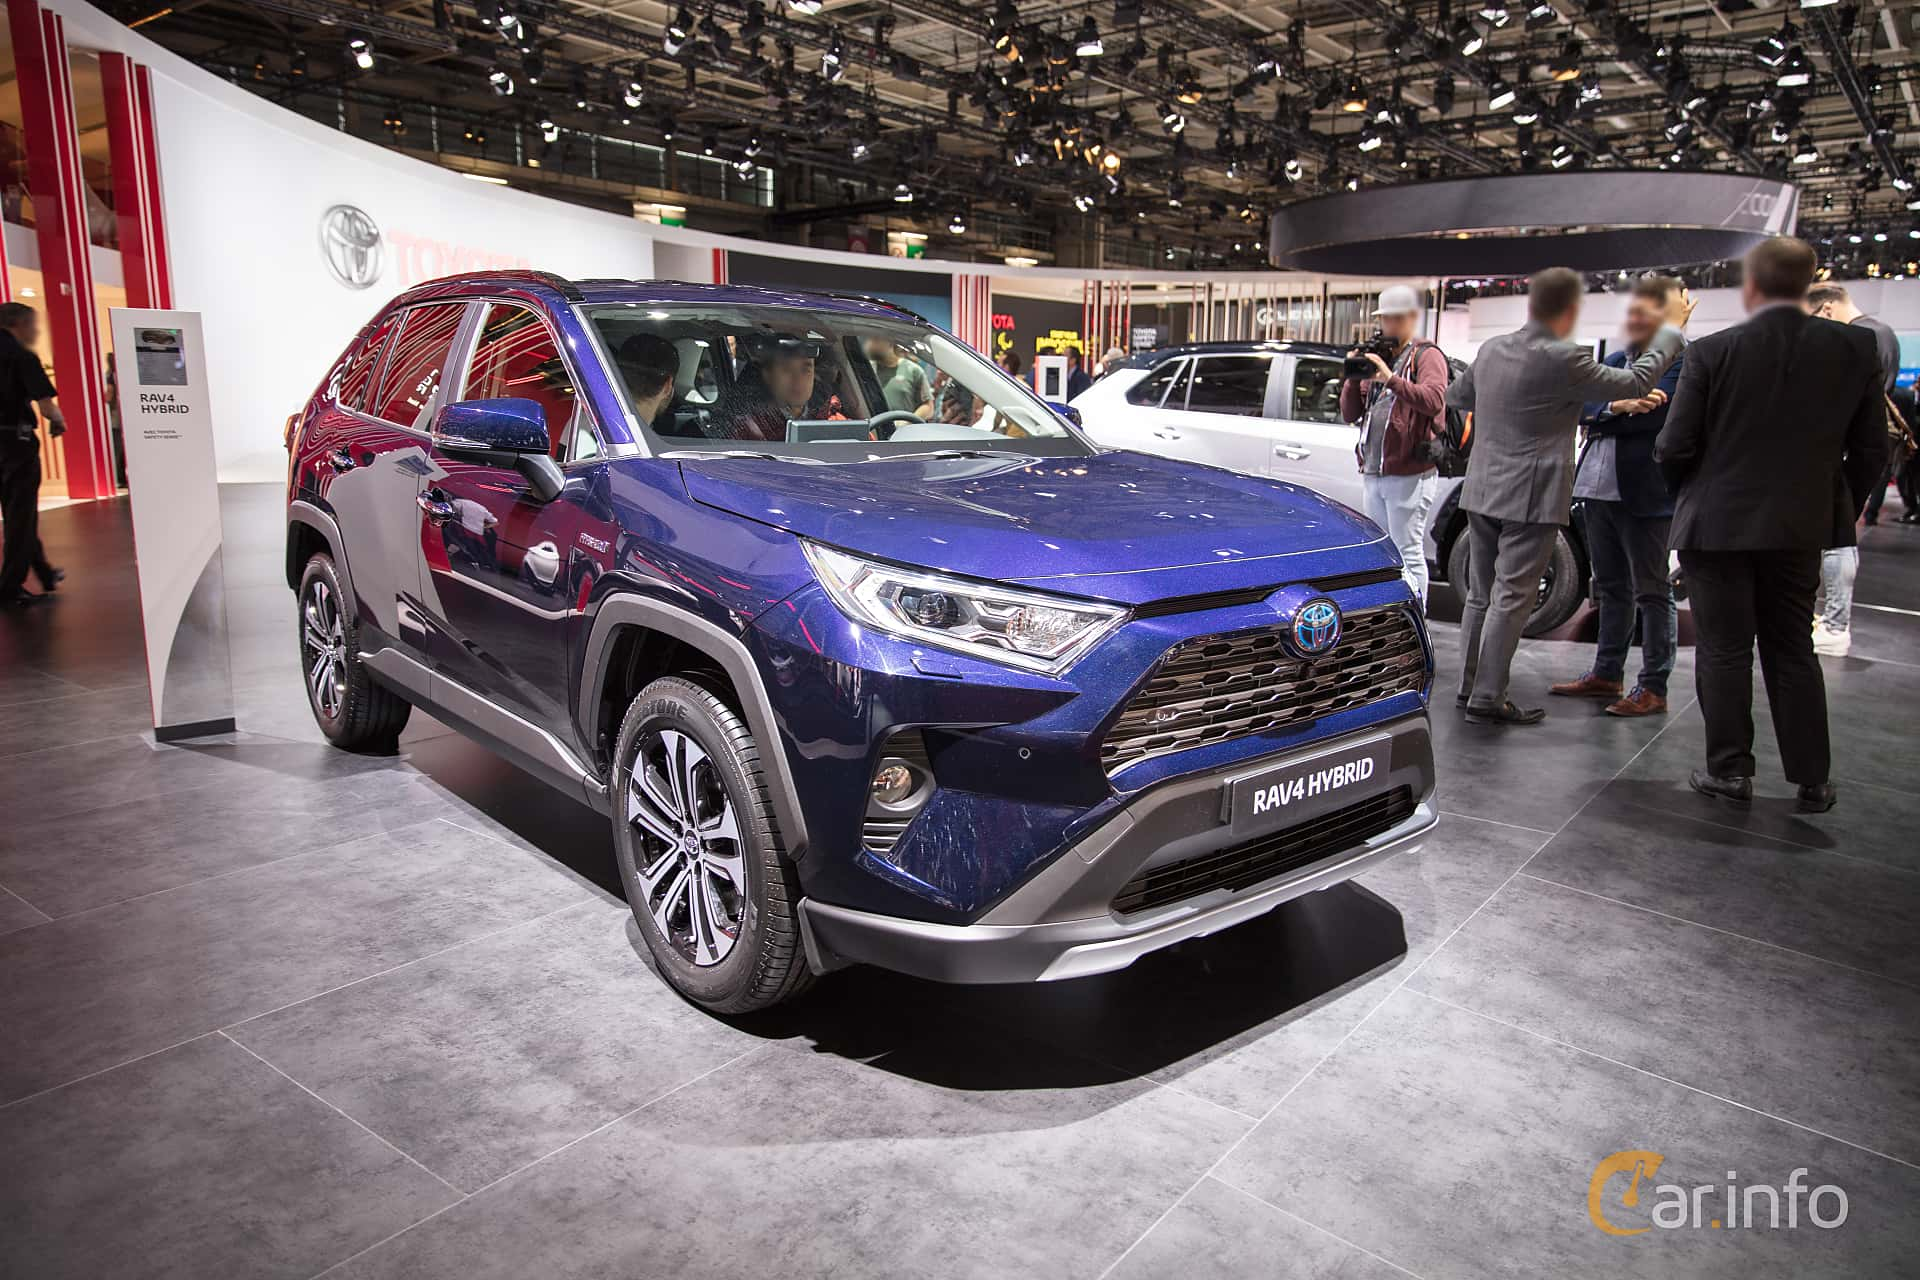 toyota rav4 2 5 awd ecvt 178hp 2019 at paris motor show 2018. Black Bedroom Furniture Sets. Home Design Ideas